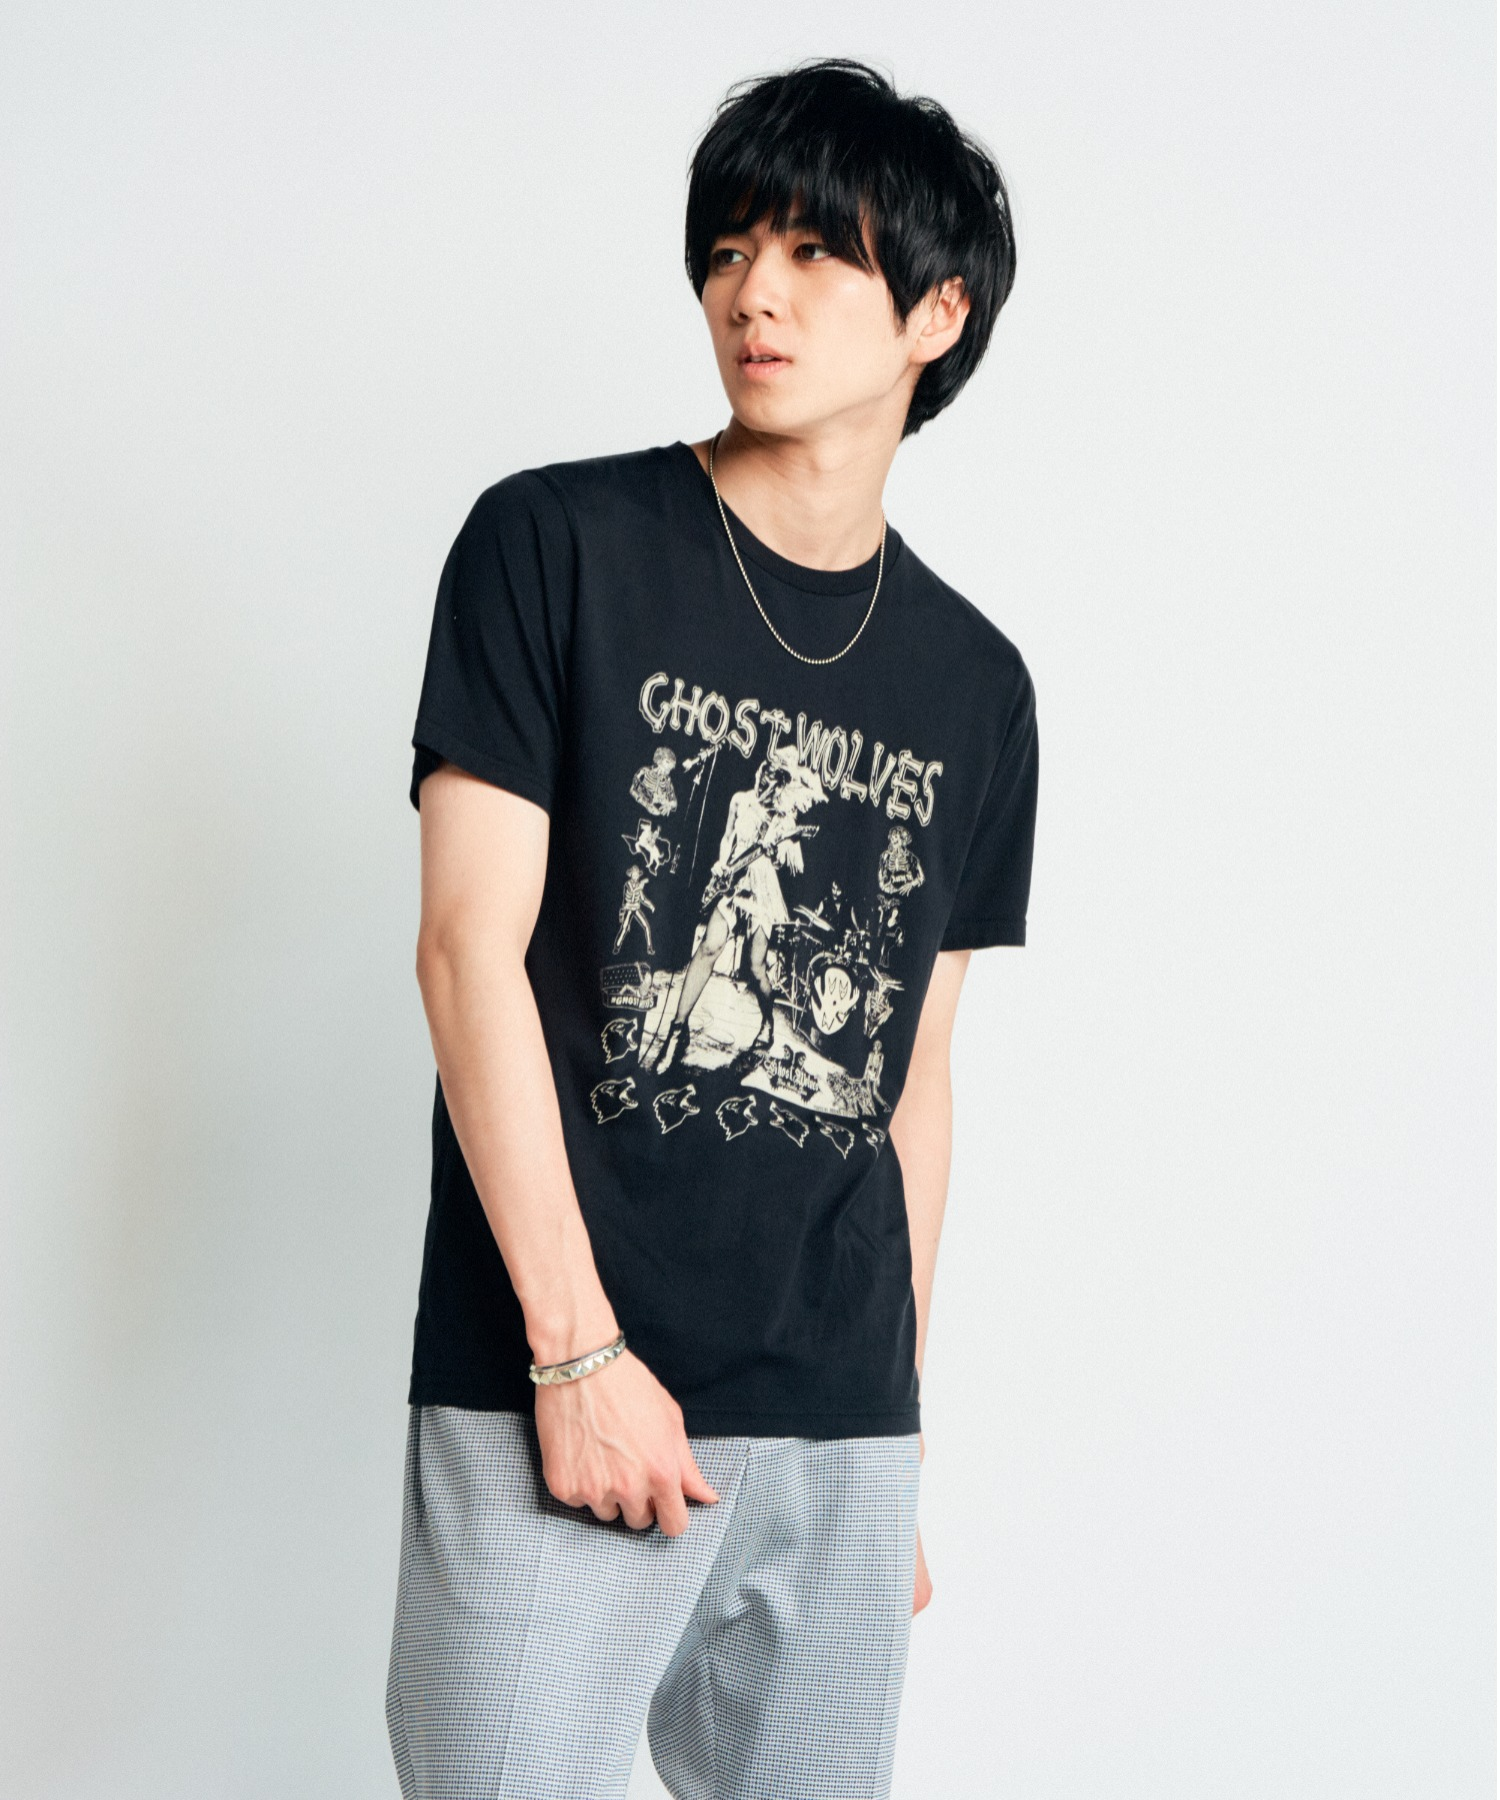 THE GHOST WOLVES/CROOKED COP Tシャツ